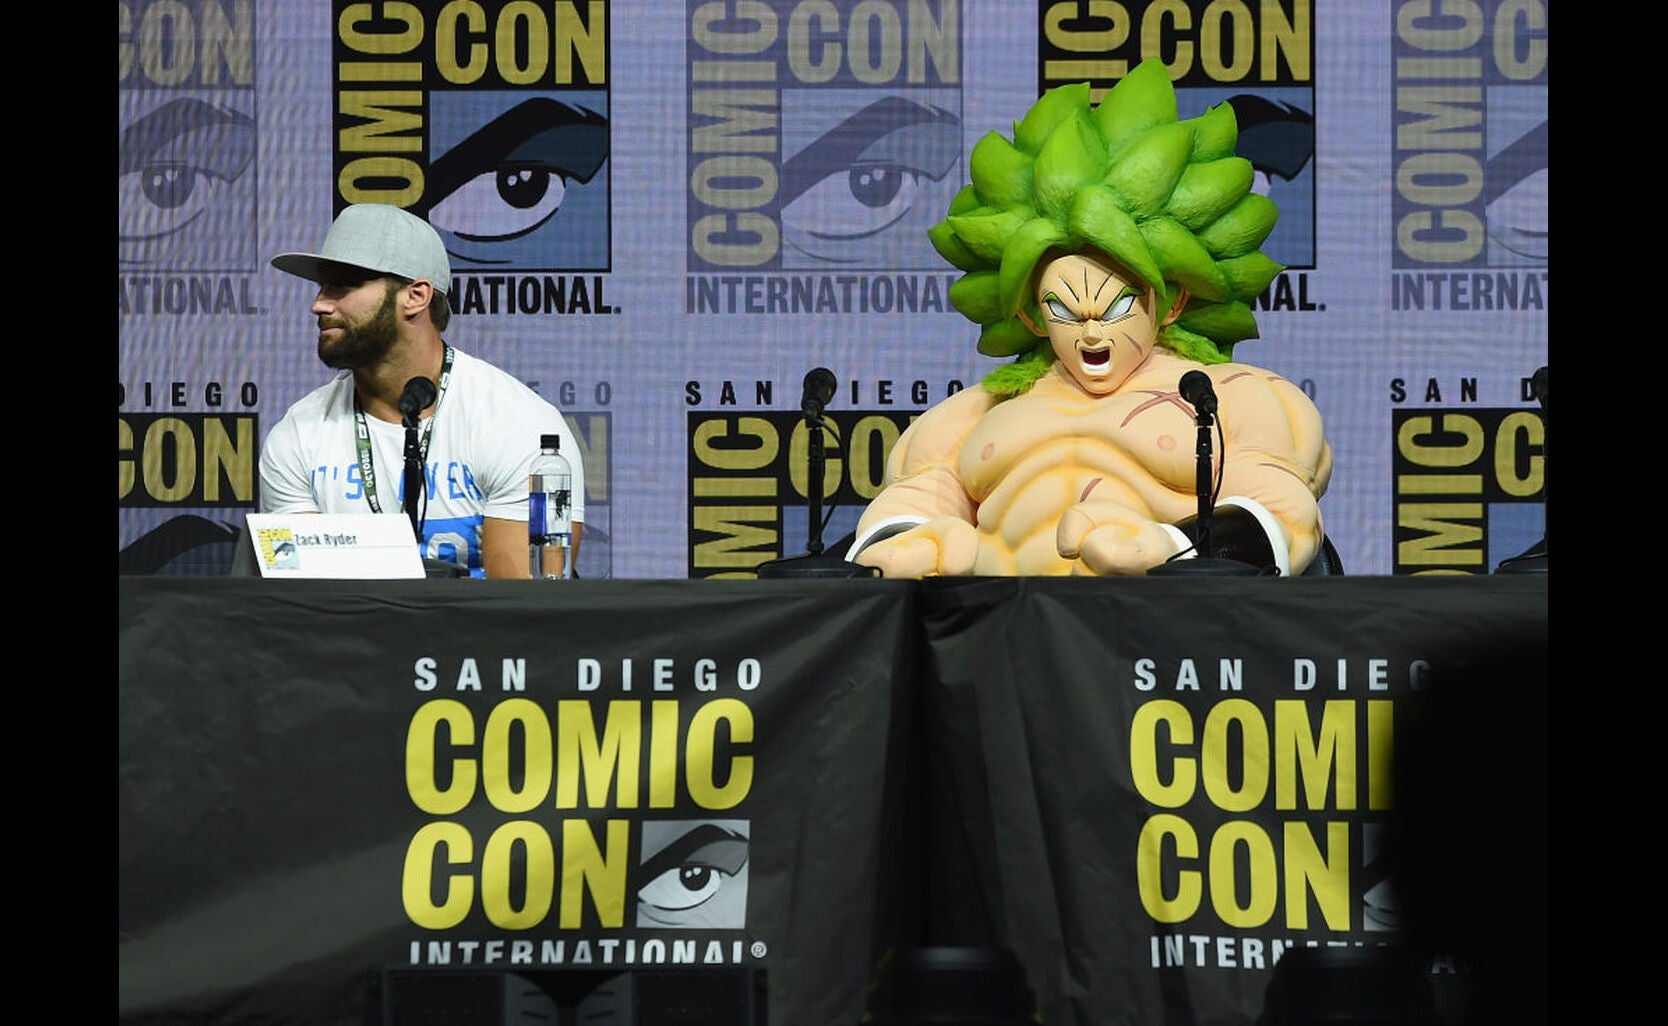 Dragon Ball panel at Comic-Con 2018